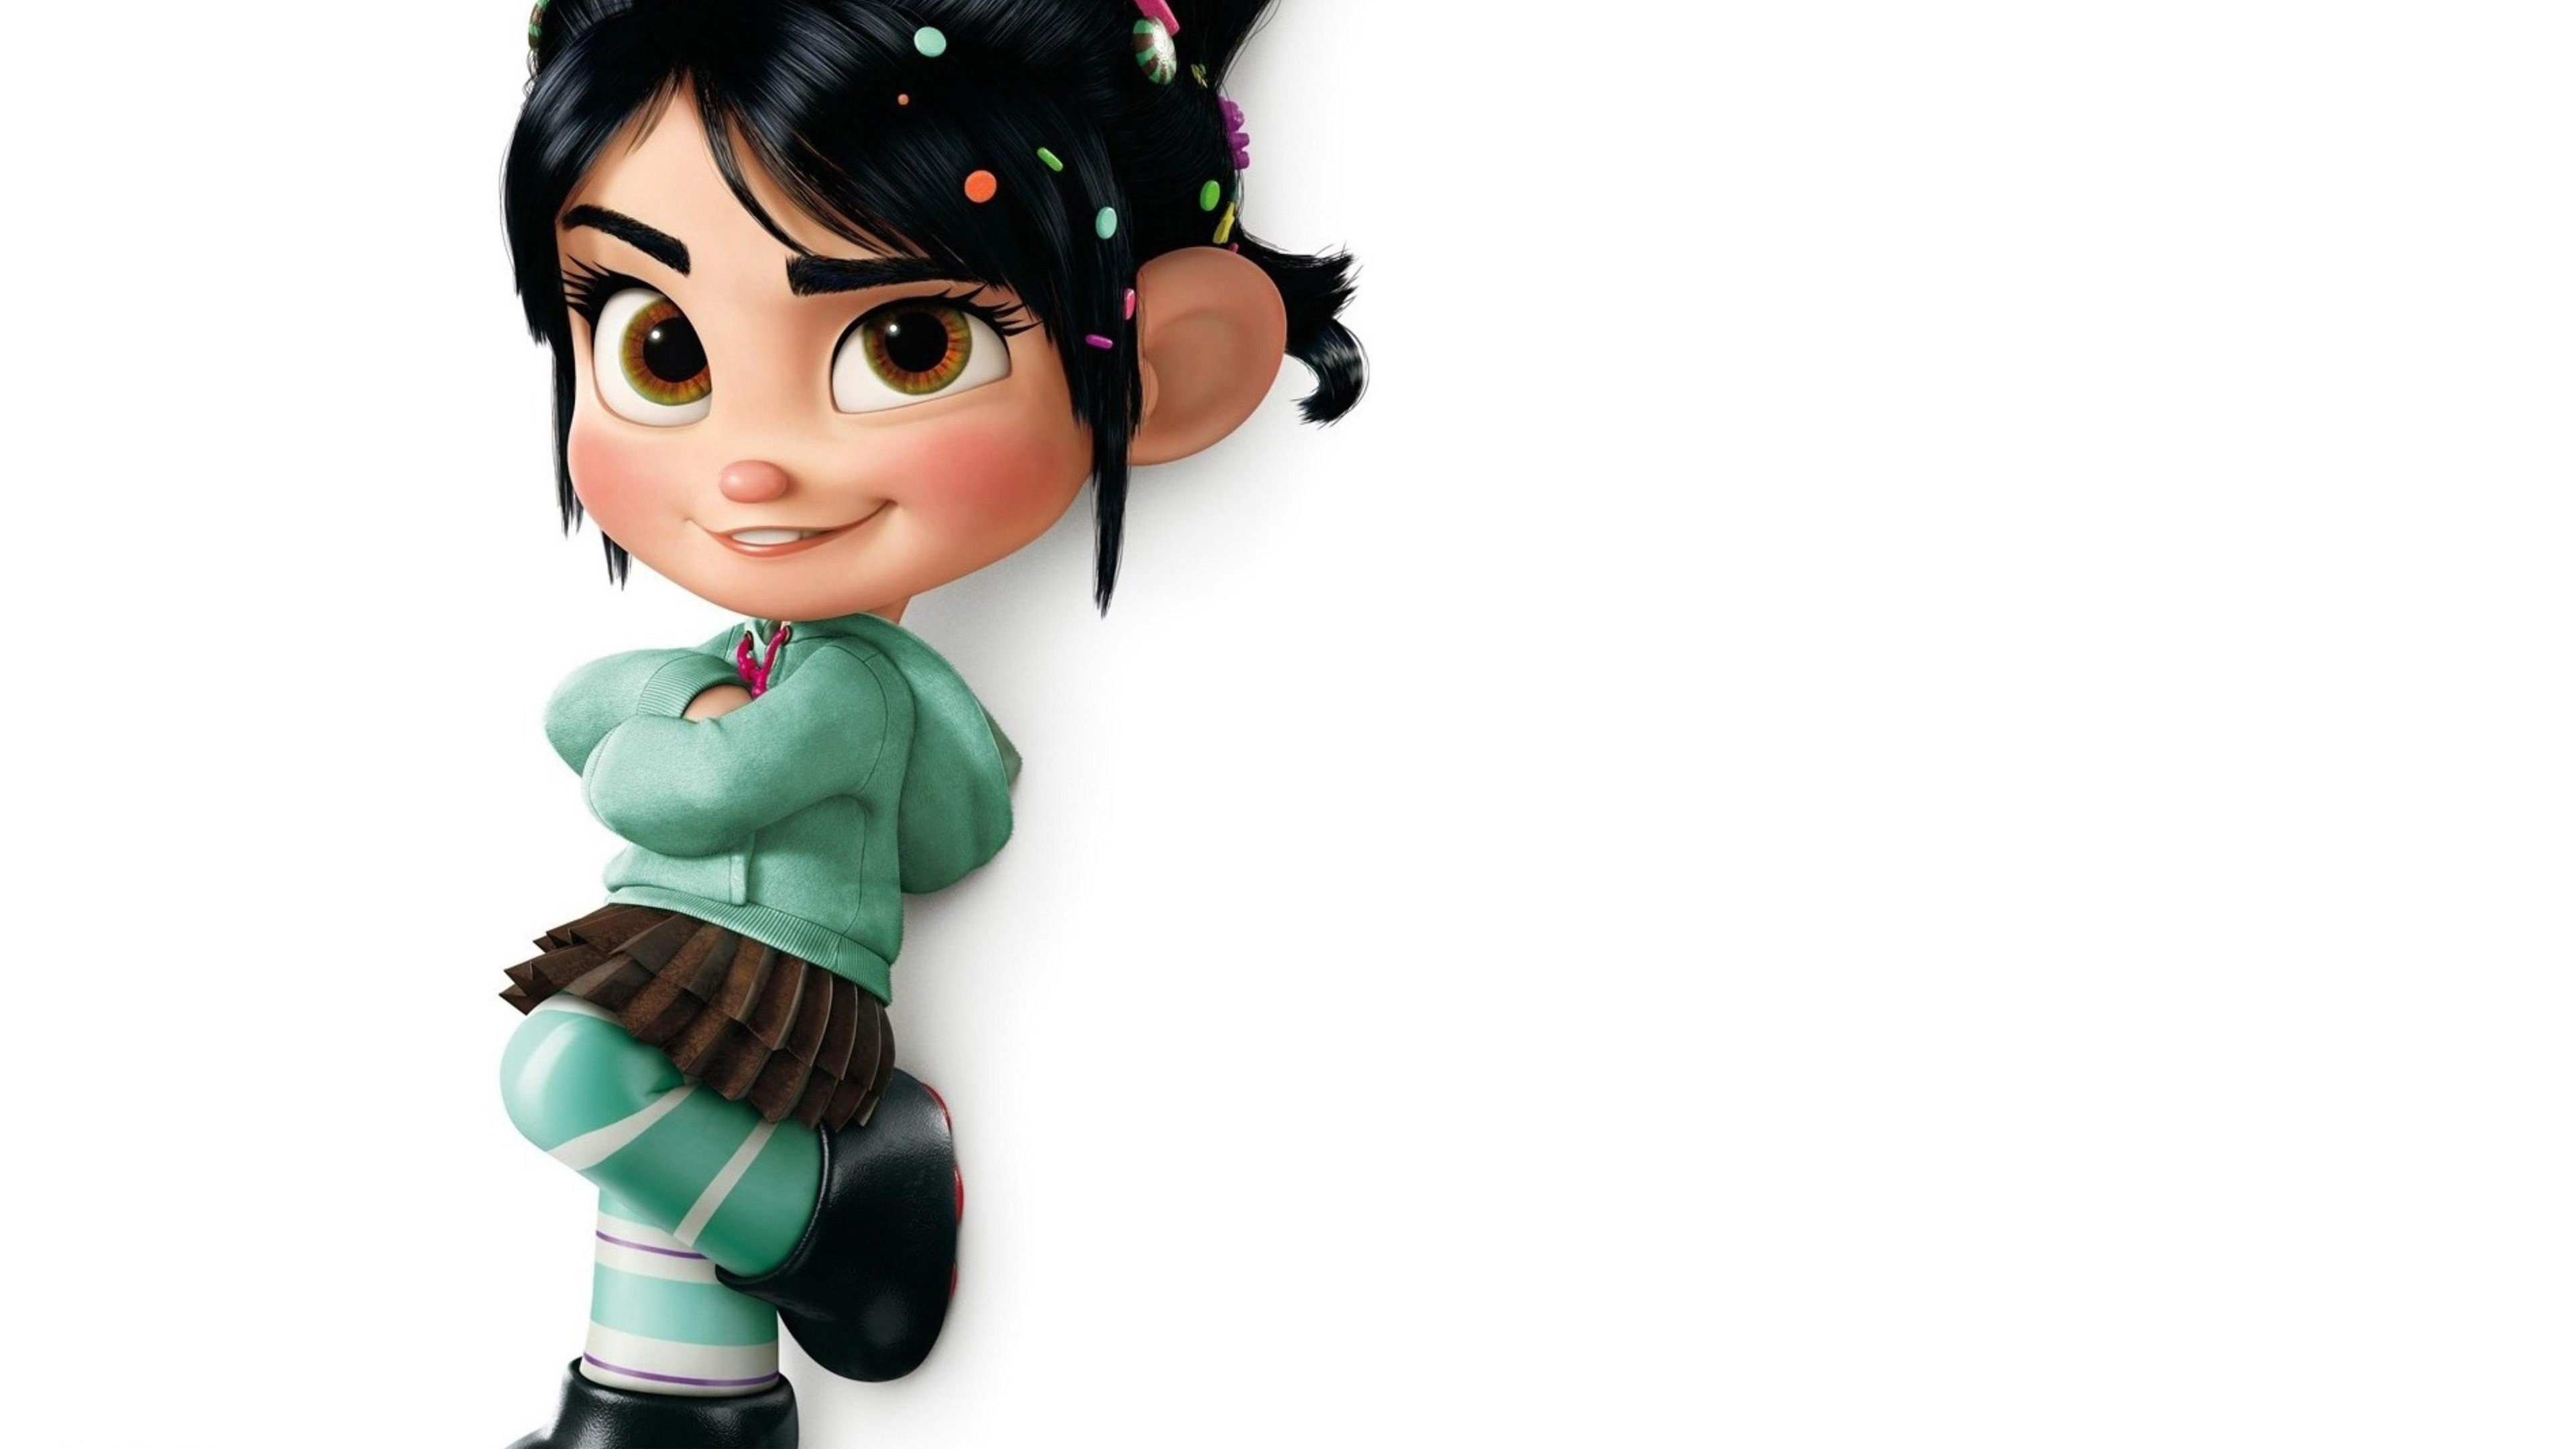 Wreck It Ralph Animation Movie 4k Hd Desktop Wallpaper For: Vanellope Wreck It Ralph, HD Movies, 4k Wallpapers, Images